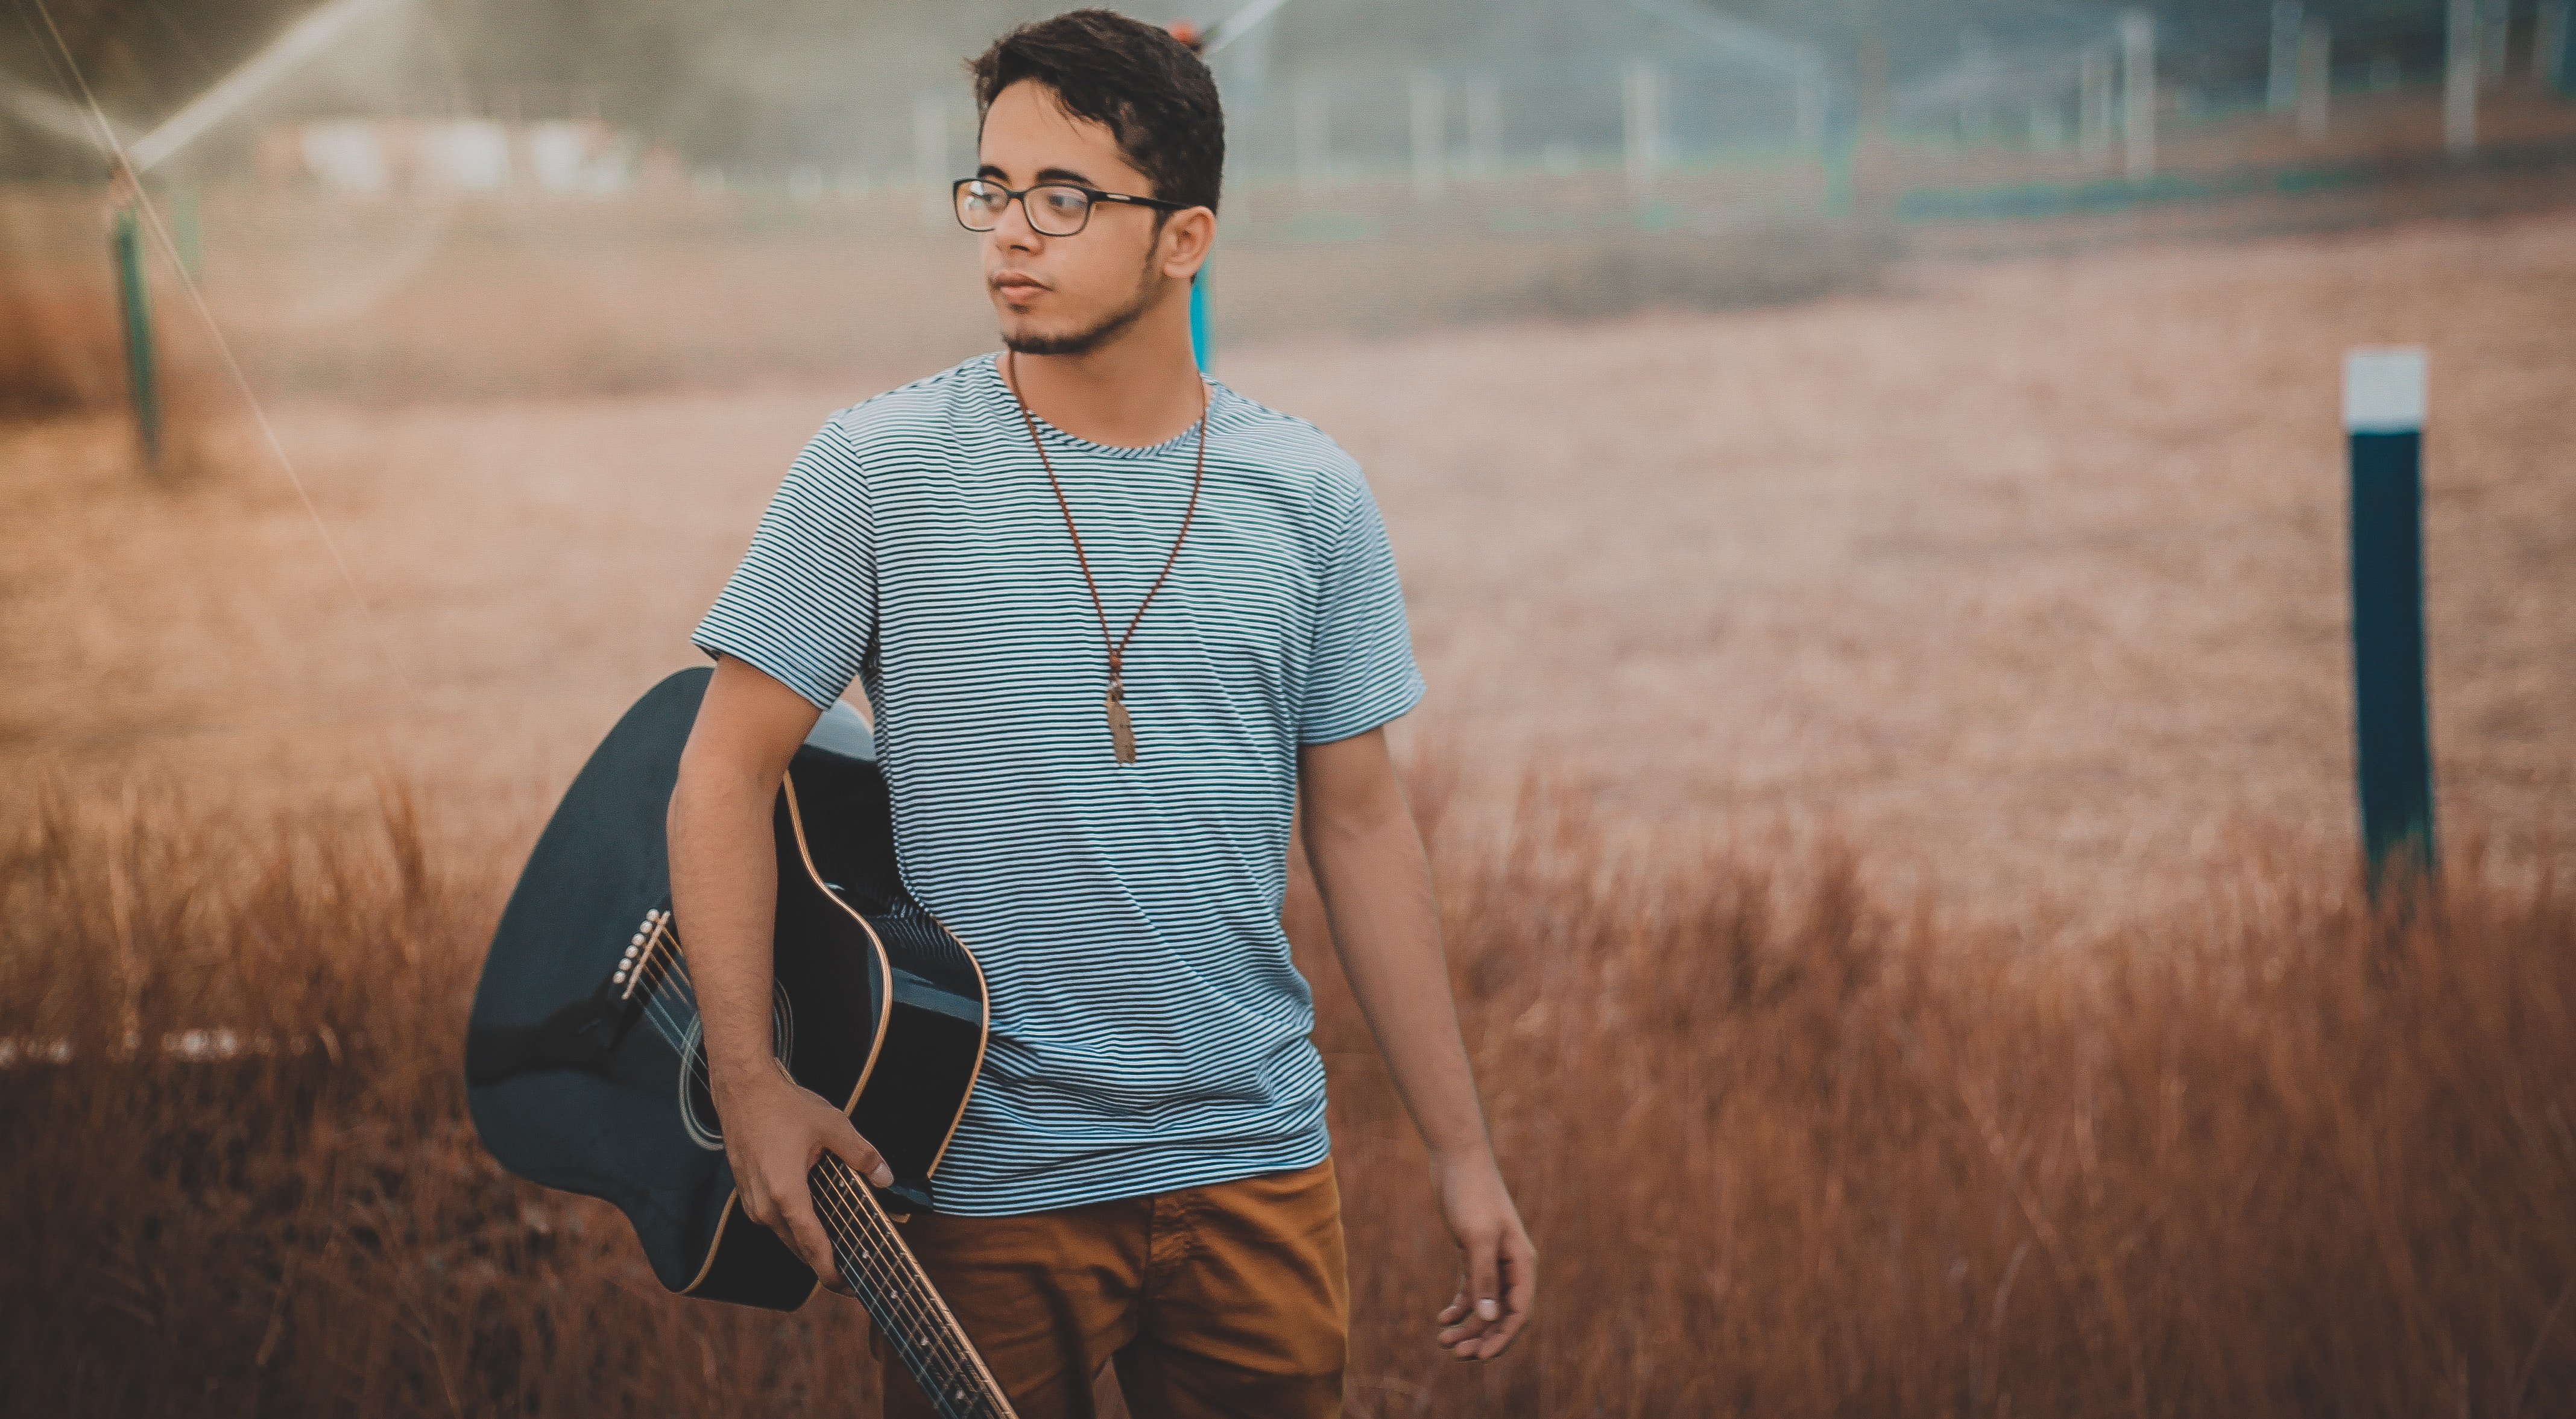 A man in a striped shirt with glasses is holding a guitar in a field.